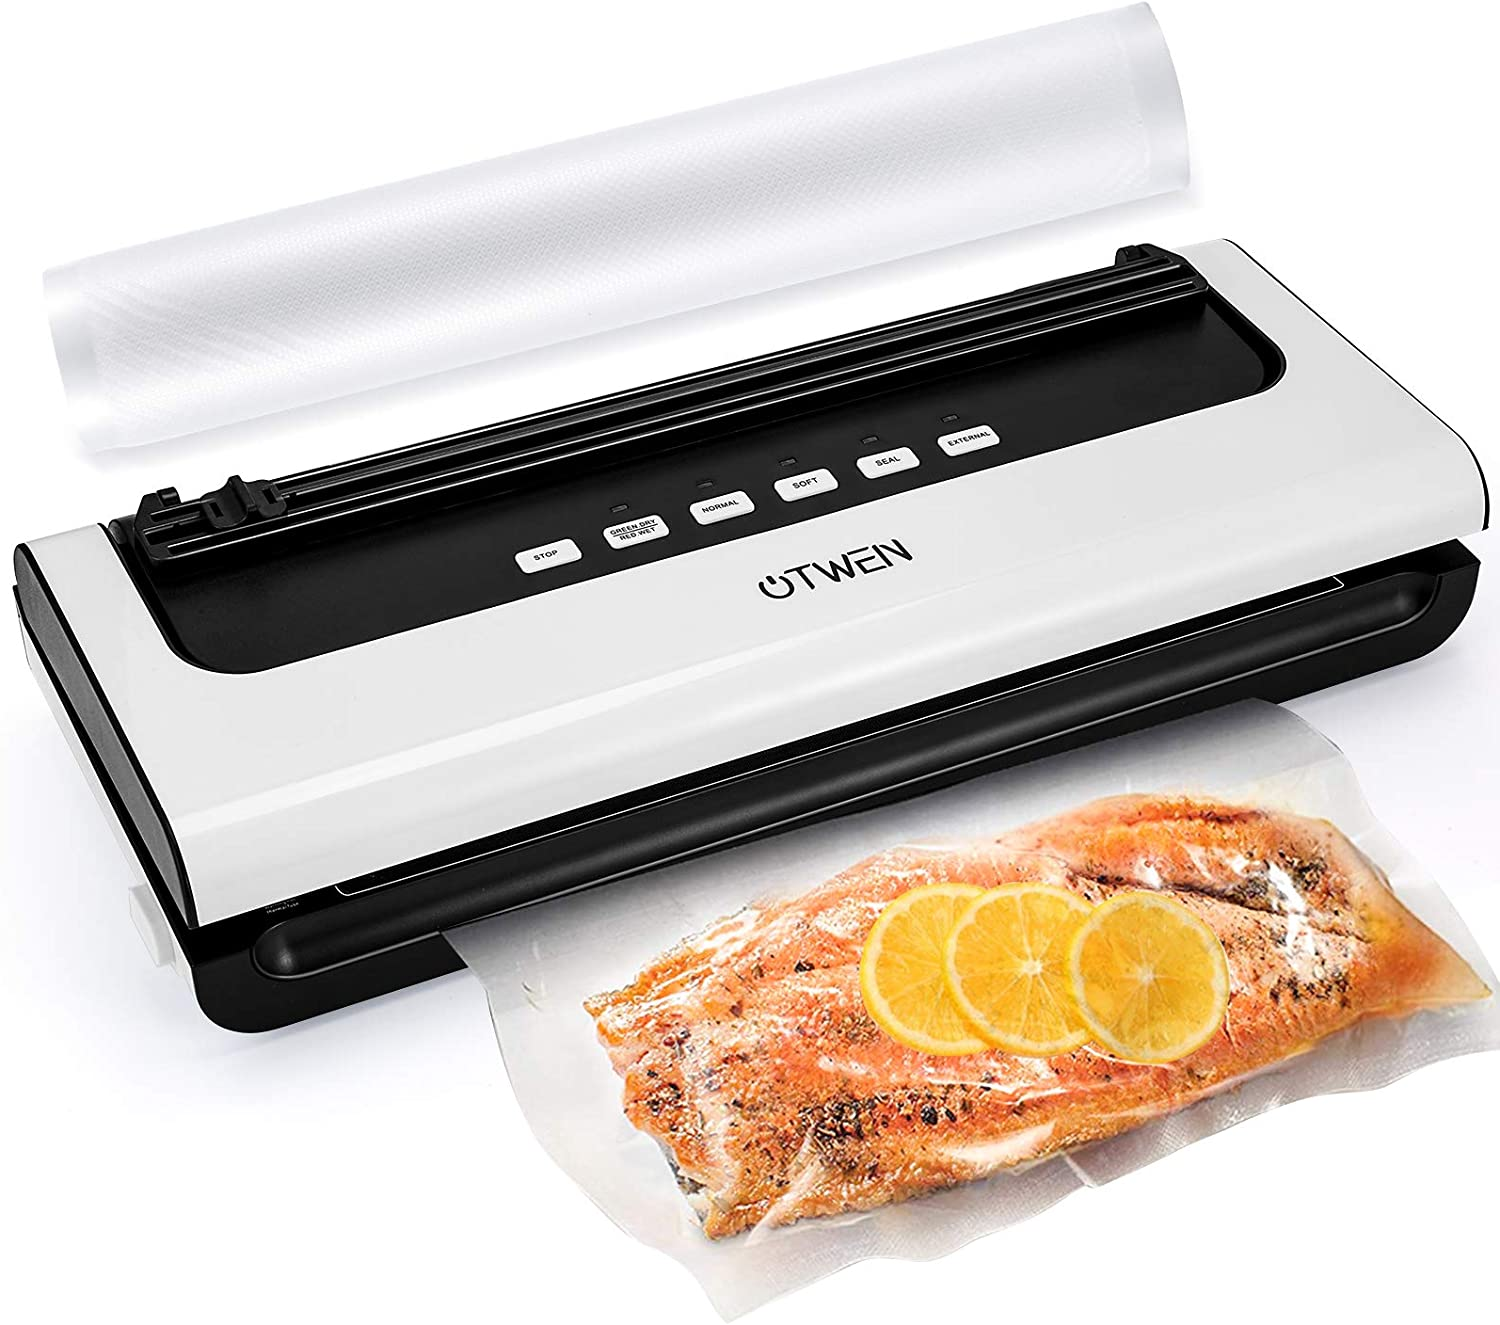 Vacuum Sealer Machine, OTWEN Automatic Food Sealer with 4 Food Modes, Vacuum Sealing Machine with Built-in Cutter, Vacuum Bags Roll, Dry & Moist and Soft & Normal Modes, Compact Design Easy to Clean